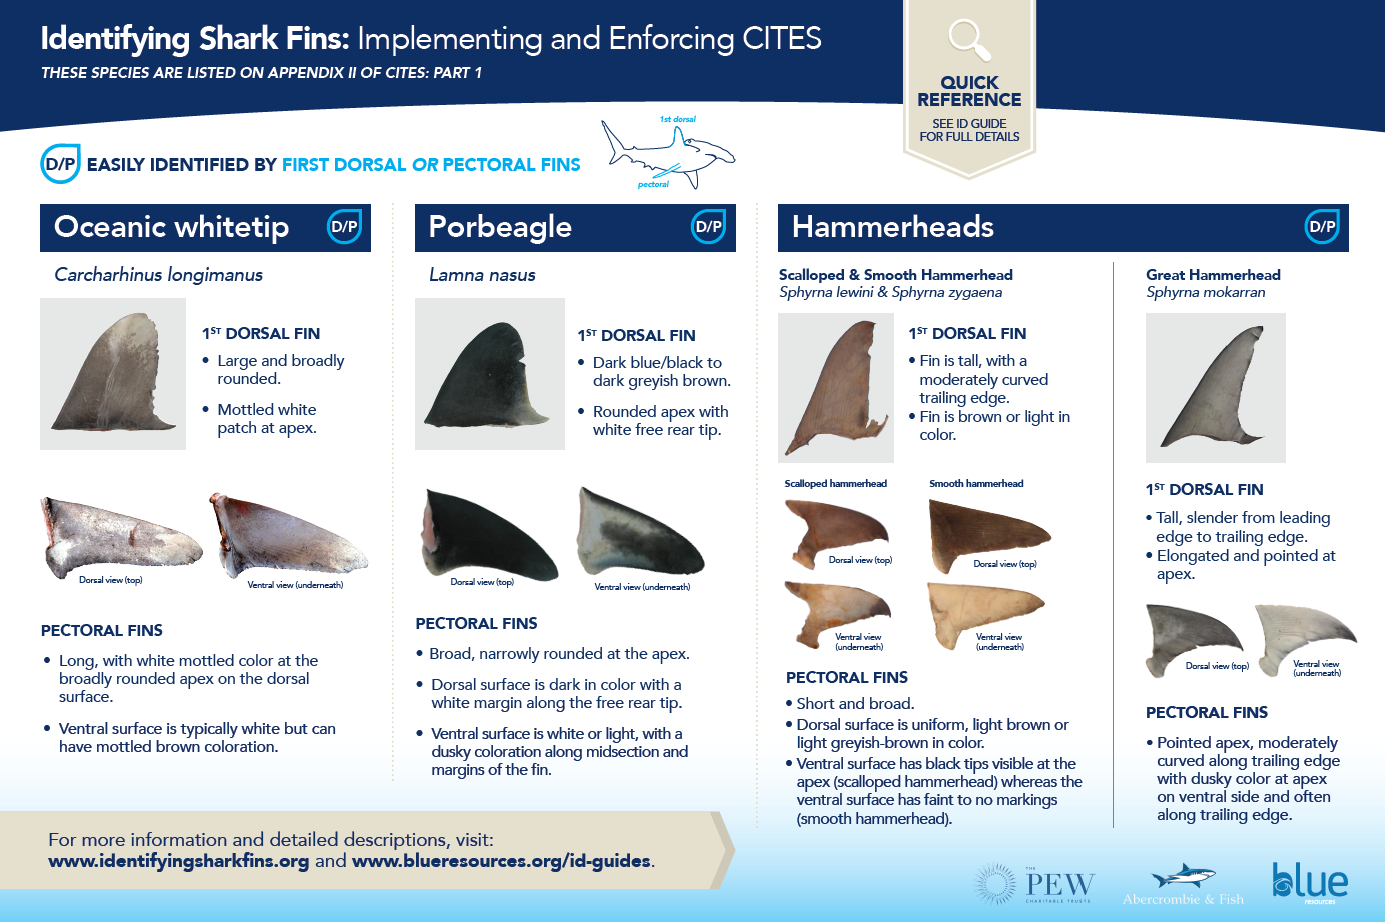 - Poster 1 shows key points to look for when identifying oceanic whitetip, porbeagle and hammerhead shark (scalloped, smooth and great) fins, both dorsal and pectoral.